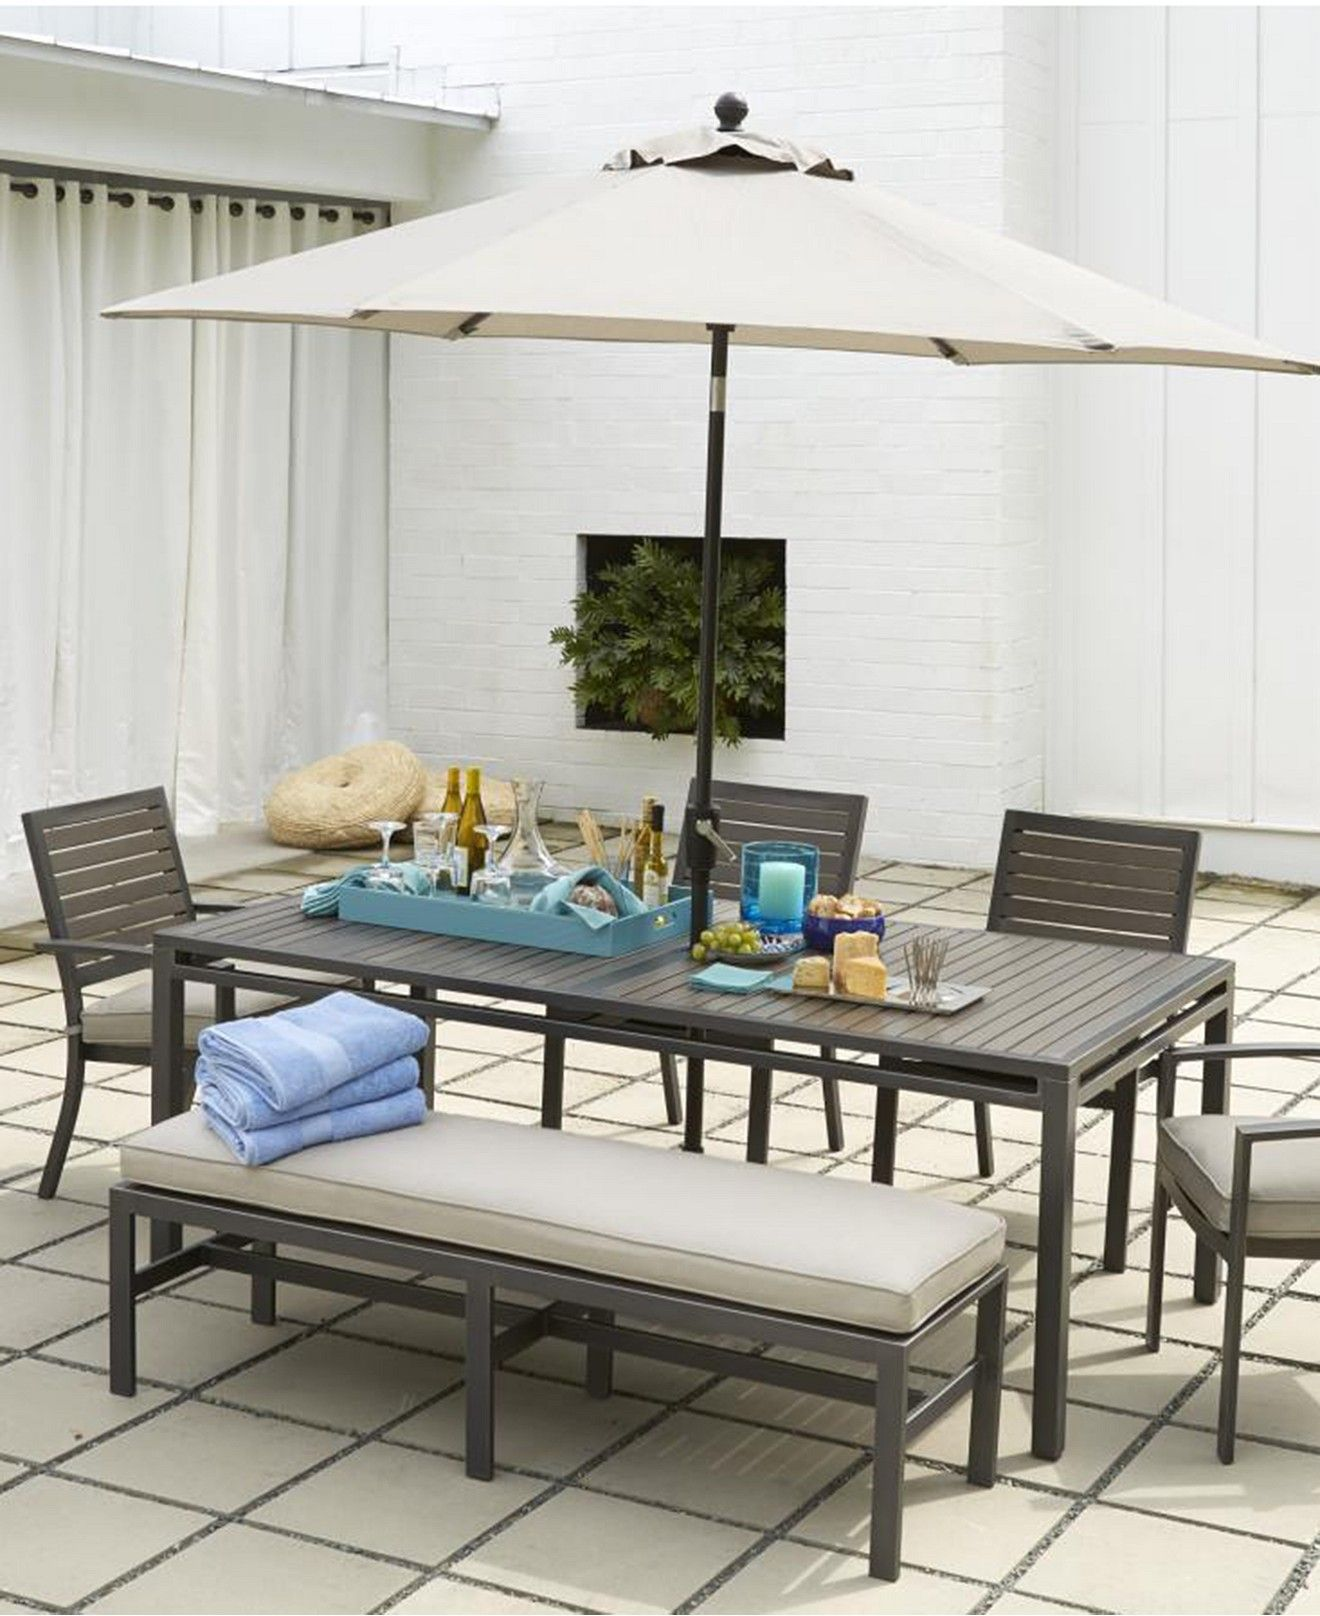 concrete mats rv dining sale sets clearance macys outdoor cupboard pavers best patio furniture